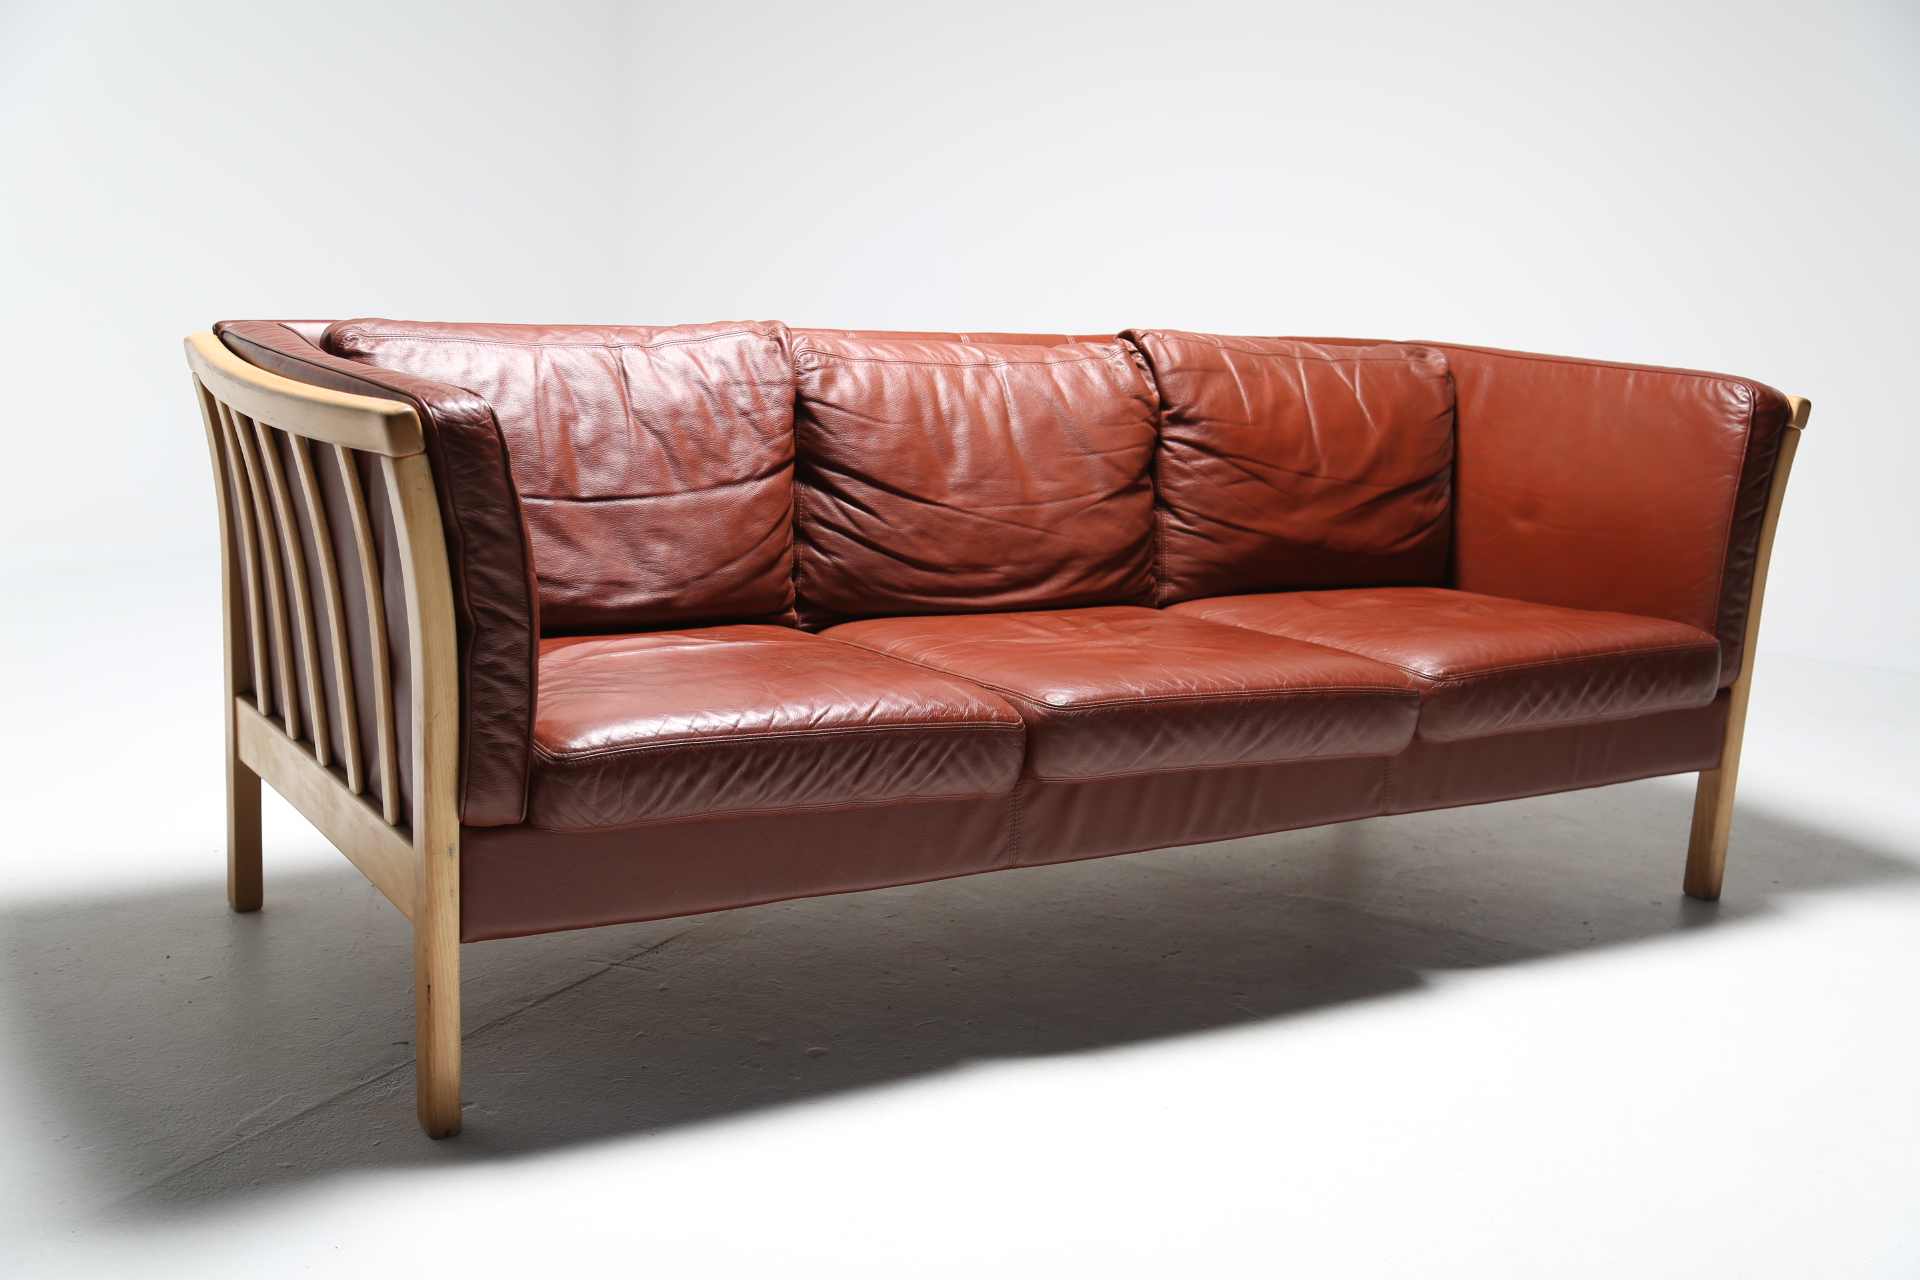 Vintage Danish Leather 3 Seat Sofa By Stouby The Vintage Hub